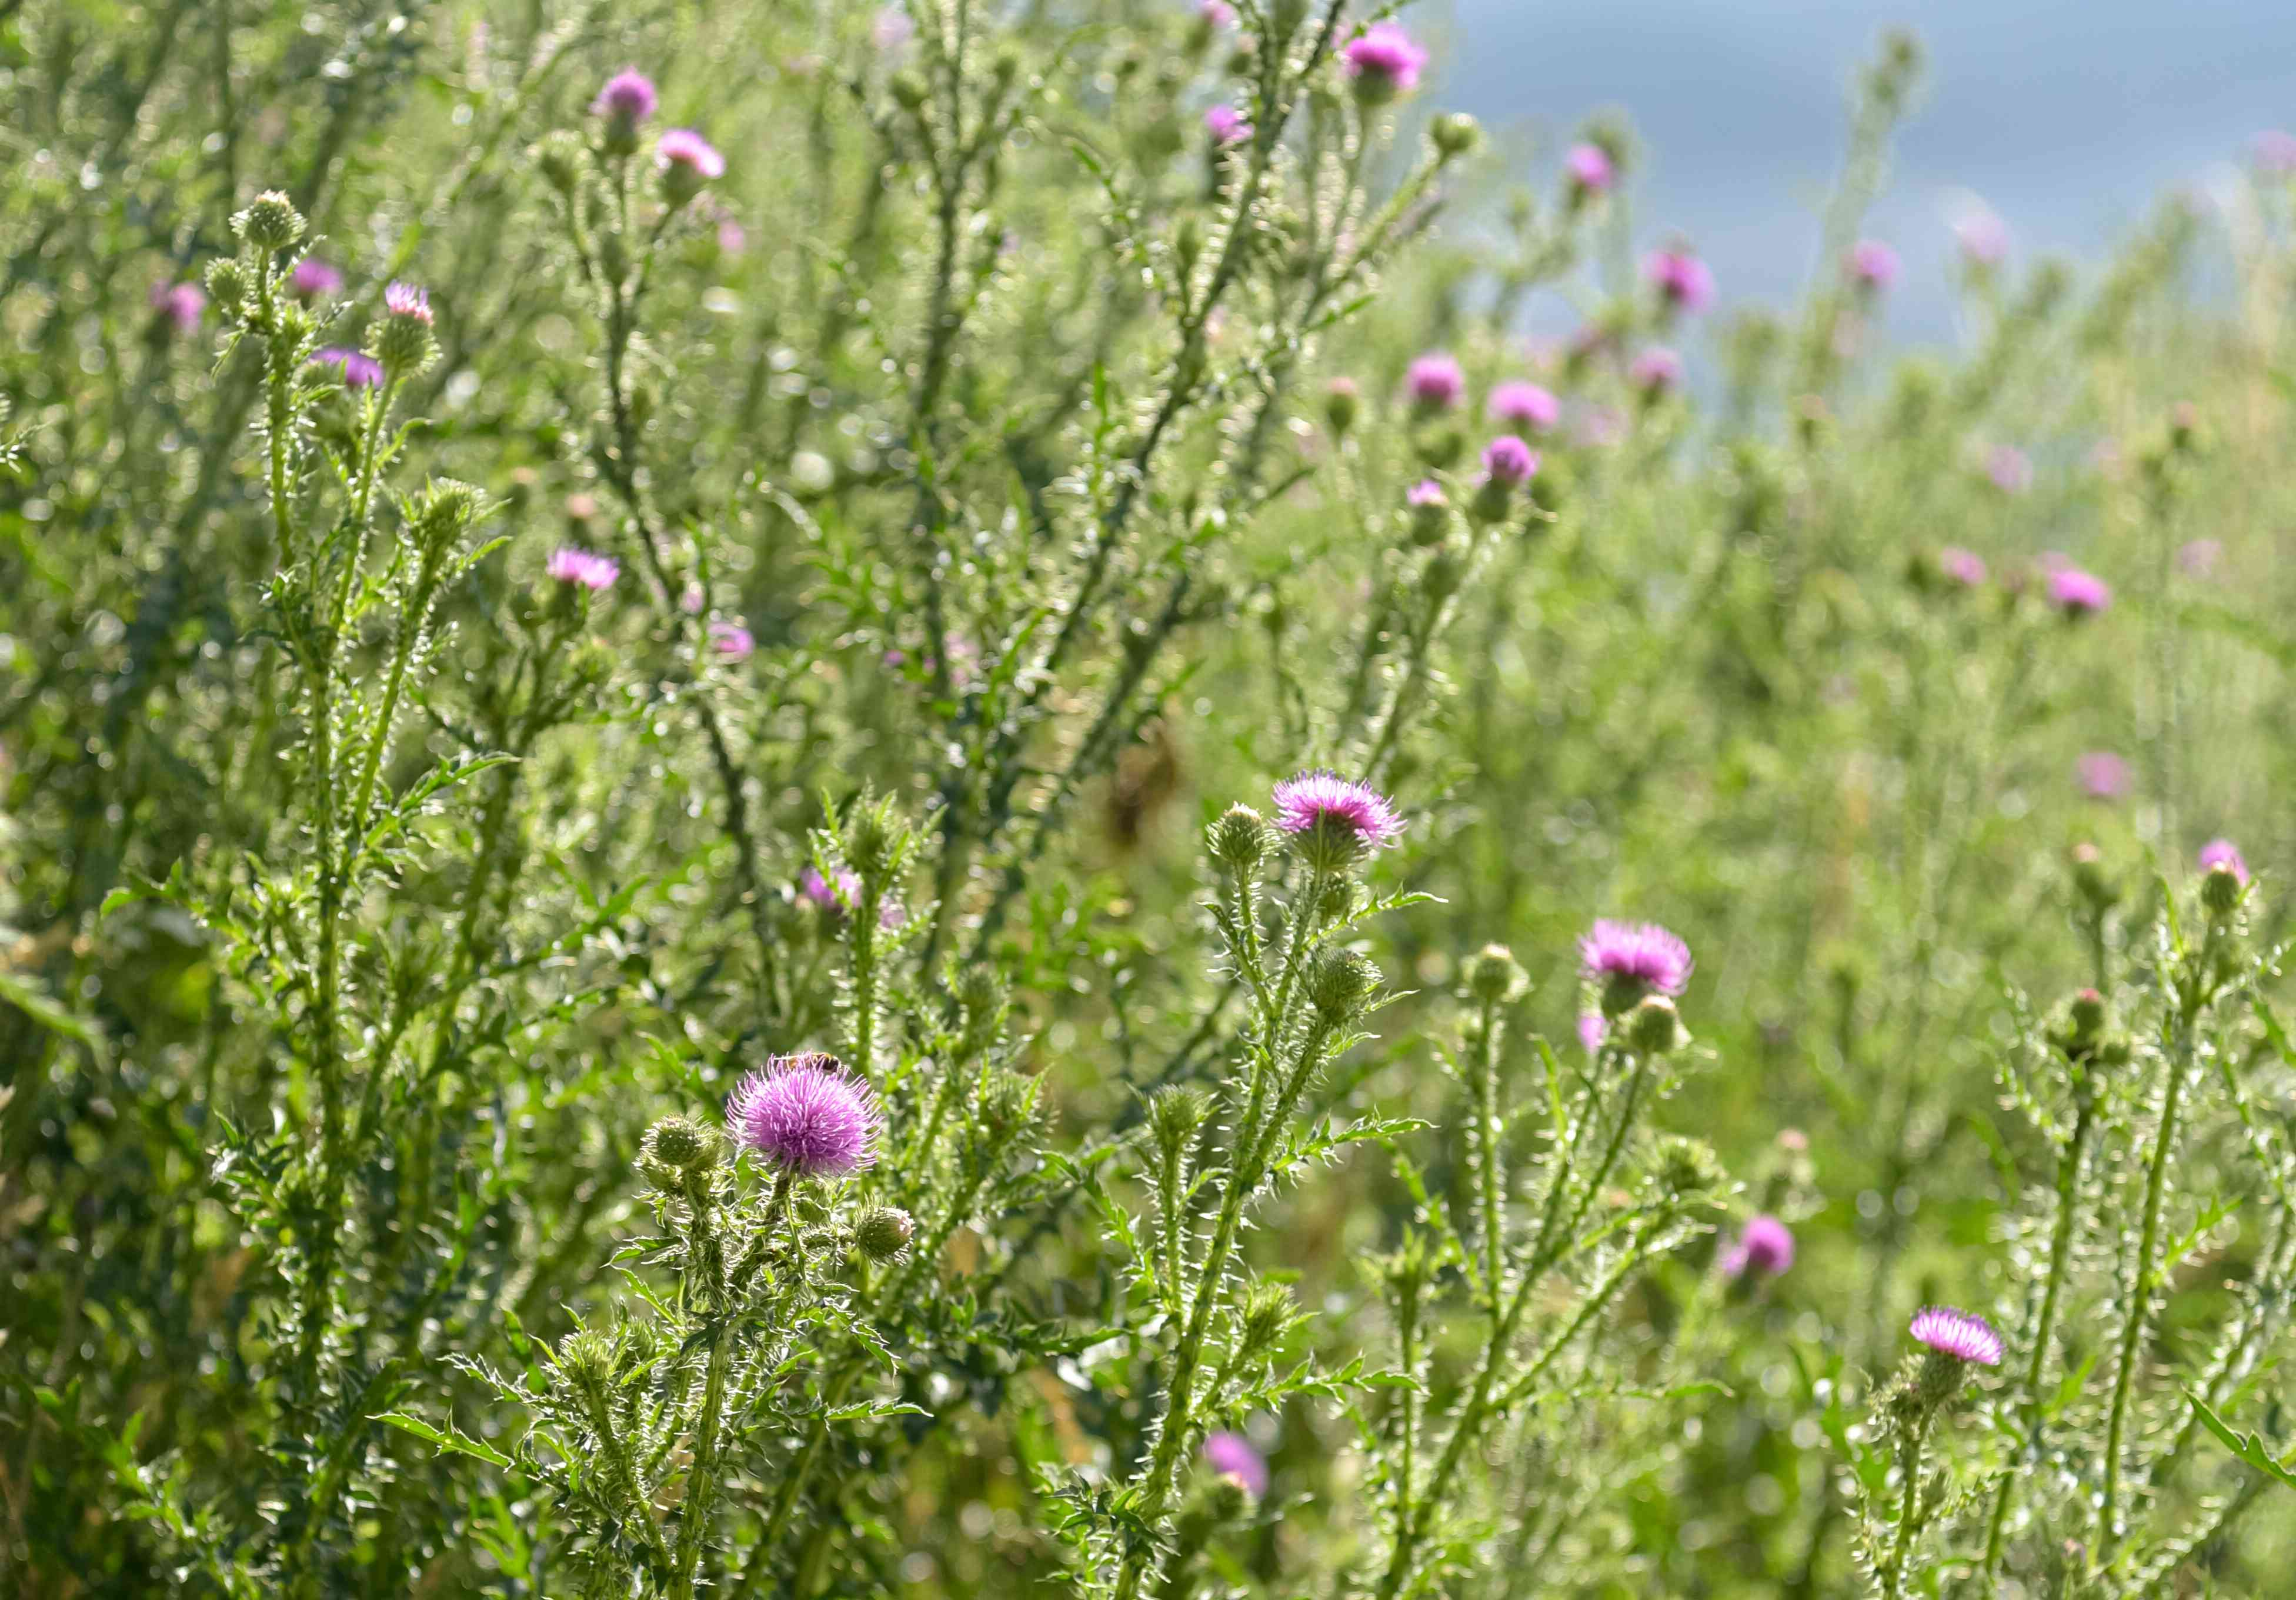 Bull thistle weed plant with prickly stalks with and small pink flowers in sunlight